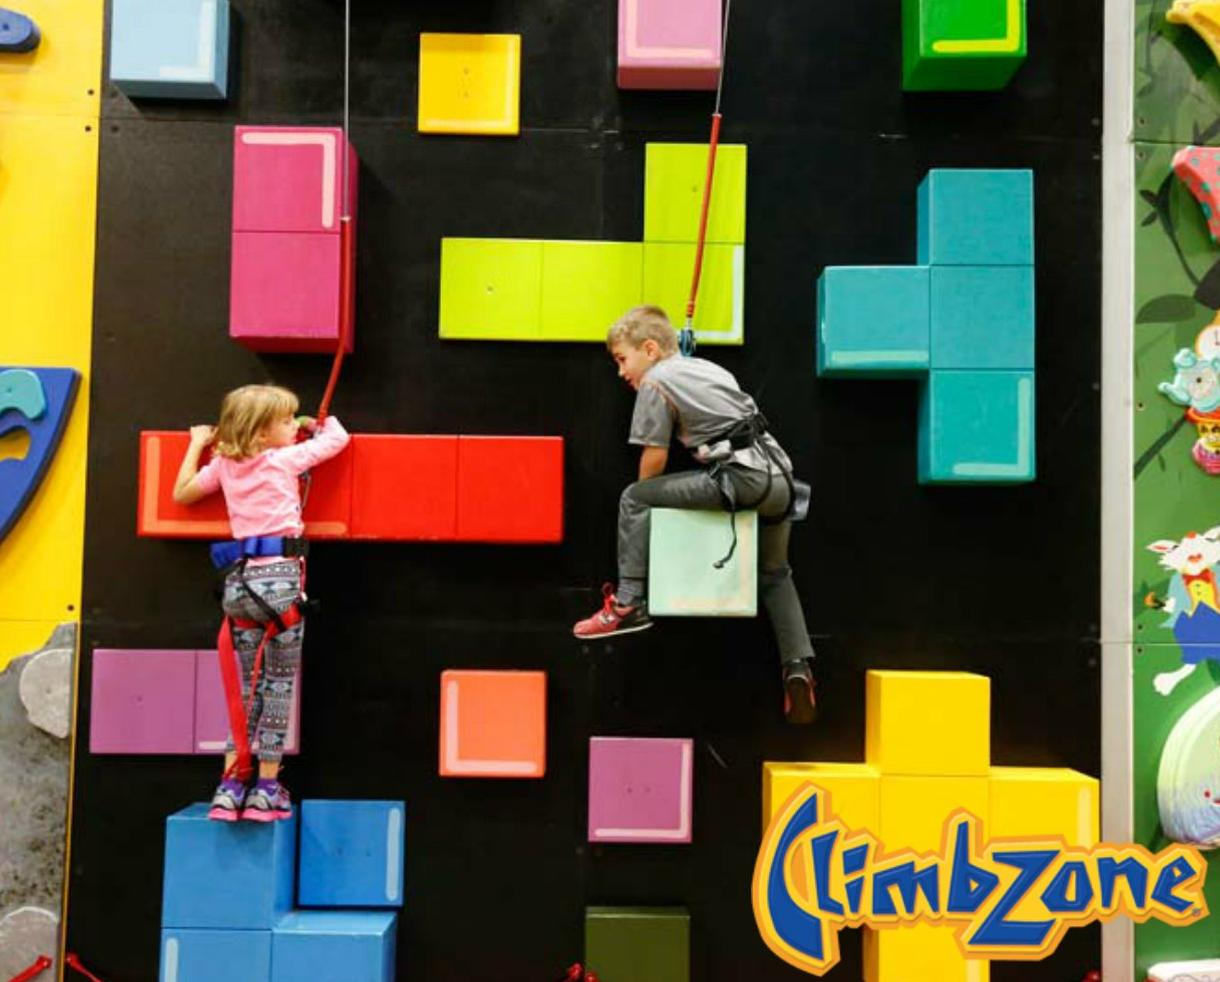 TWO ClimbZone Indoor Rock Climbing Admissions